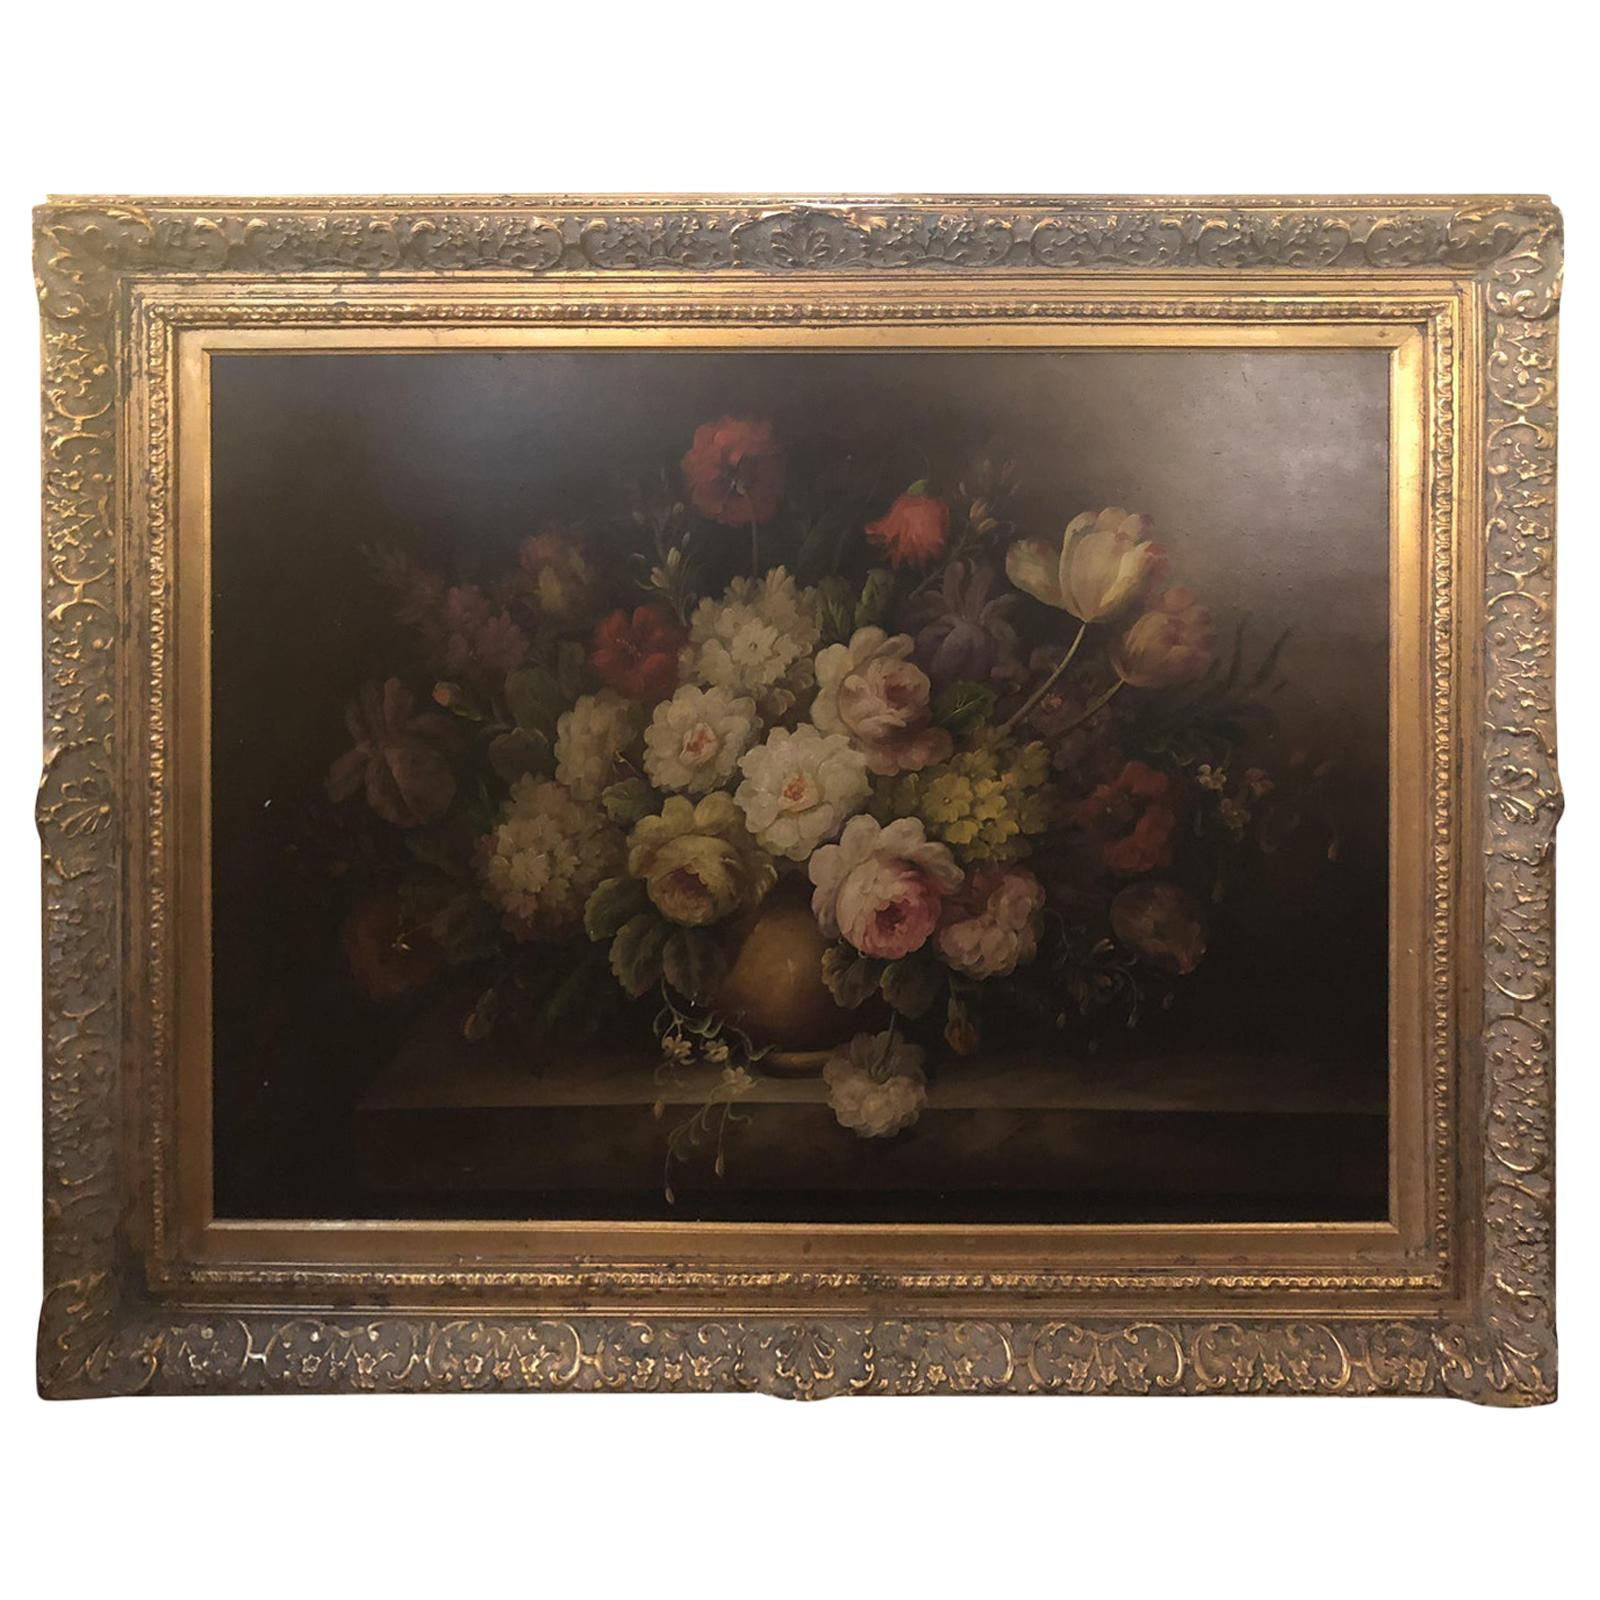 Classical Flower Vase Still Life Painting Oil on Canvas